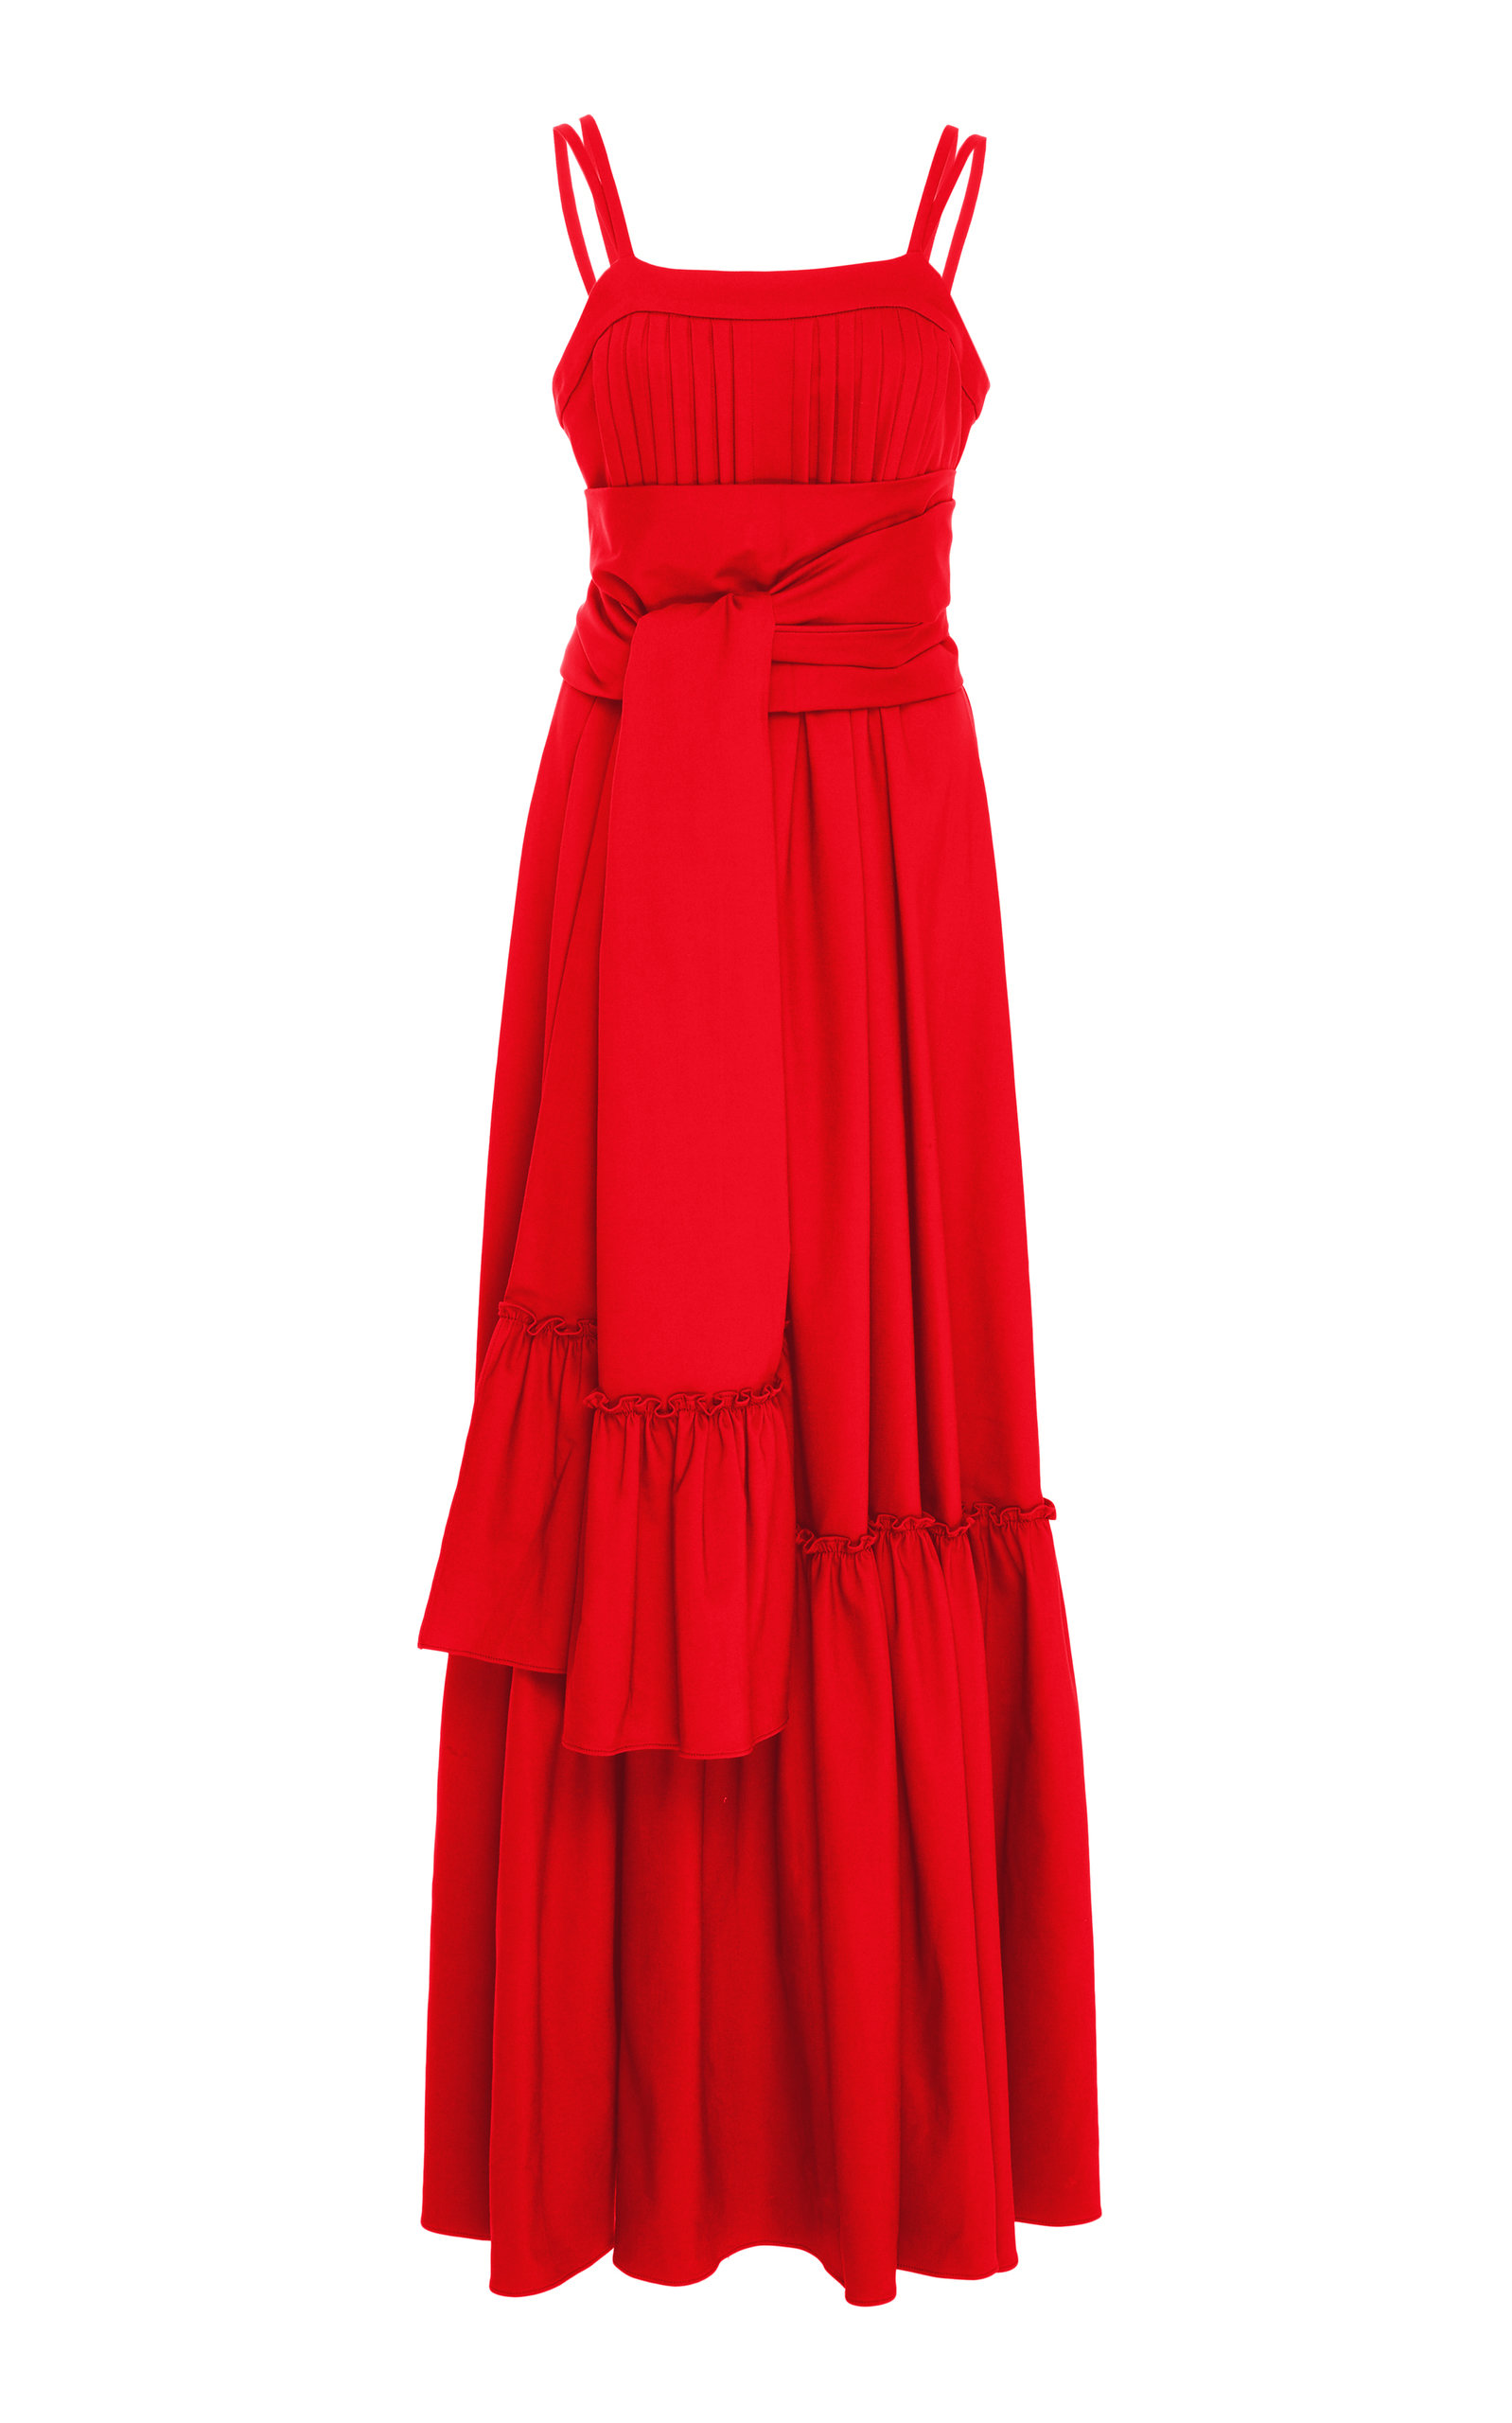 Ophira Tiered Sleeveless Maxi Dress With Sash in Red